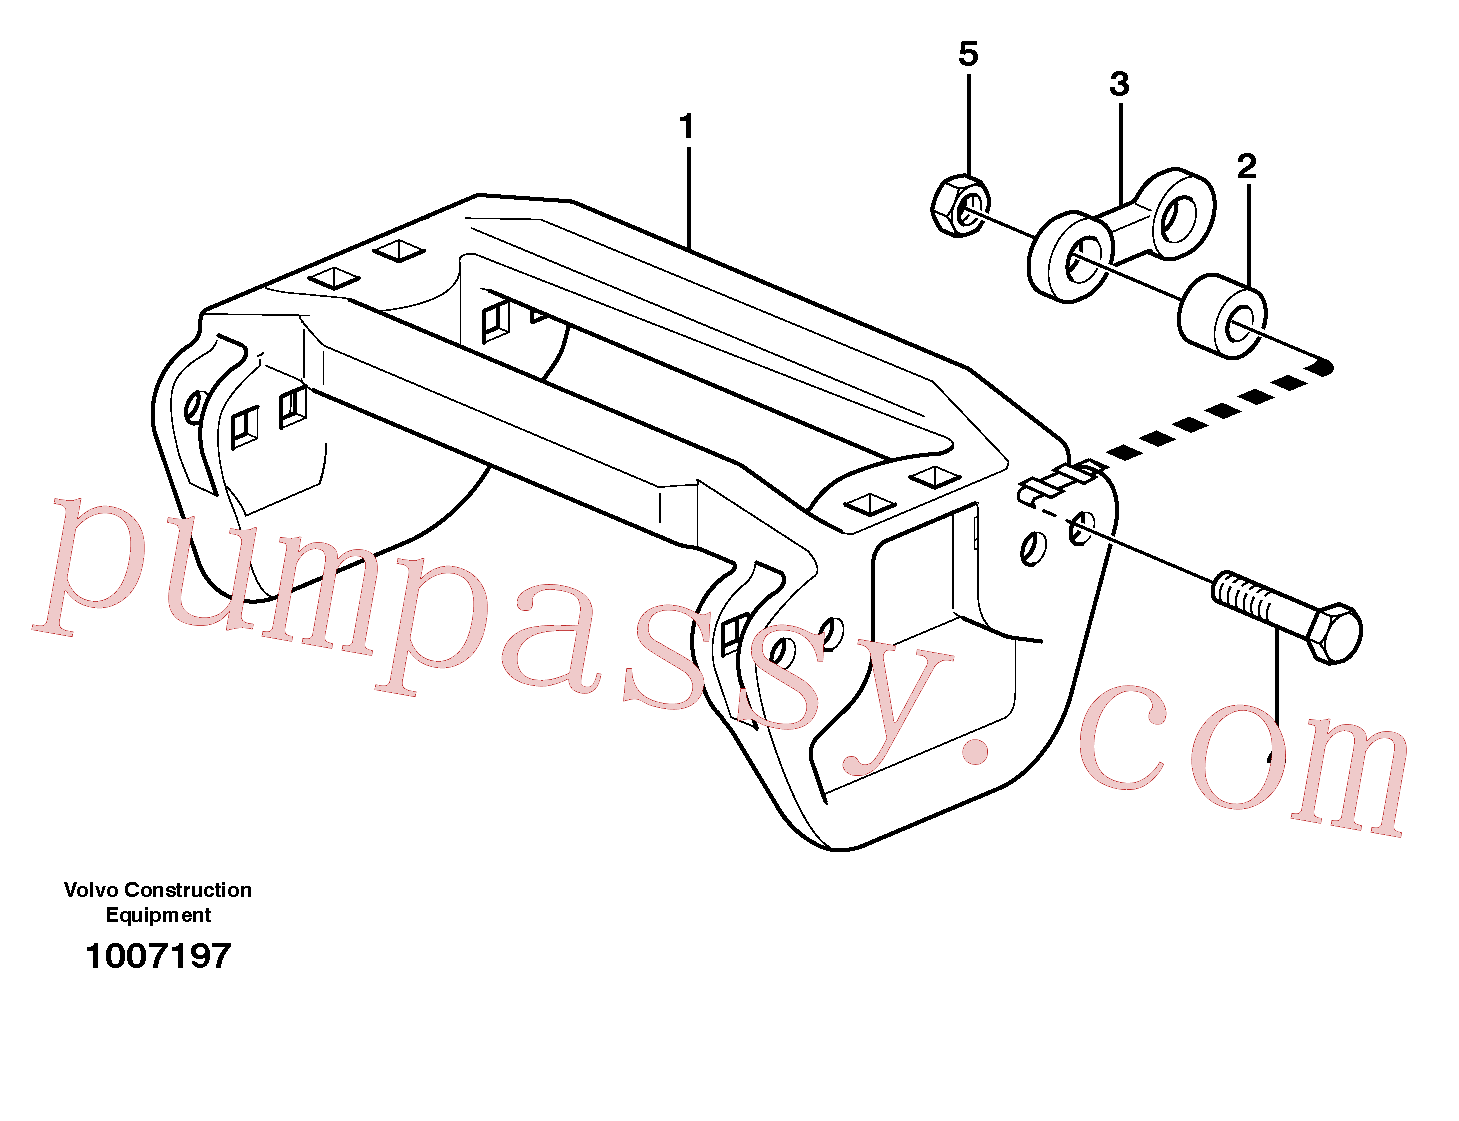 VOE14102830 for Volvo Track equipment(1007197 assembly)